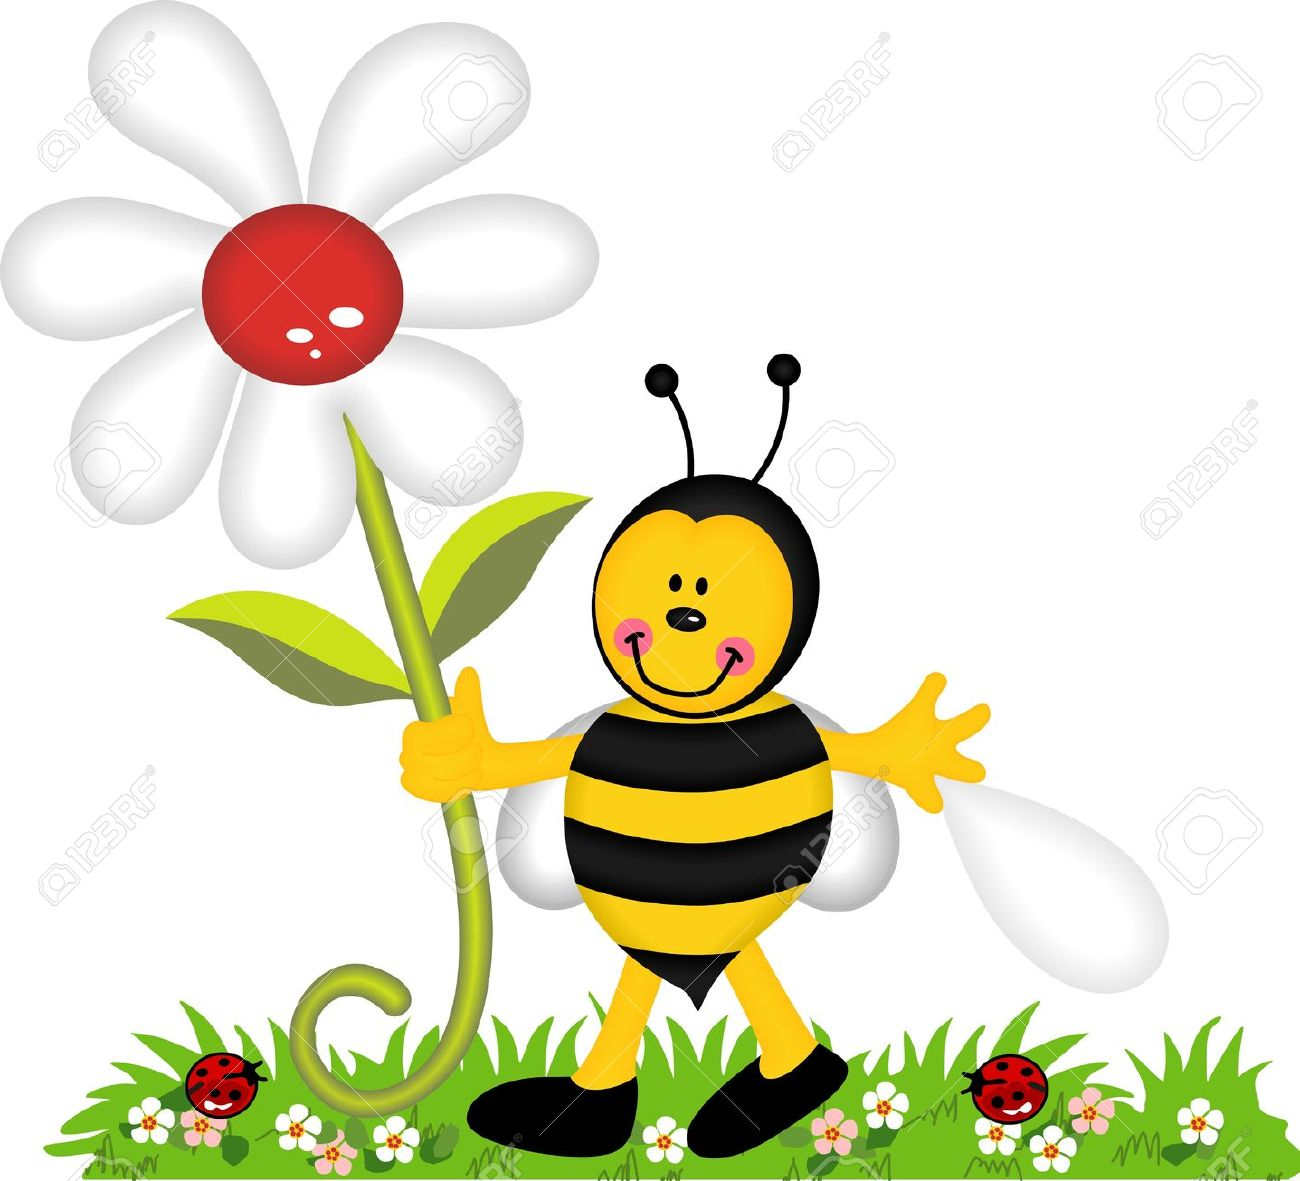 Flowers and bees clipart banner free stock Happy Bee Holding Flower In Garden Royalty Free Cliparts, Vectors ... banner free stock